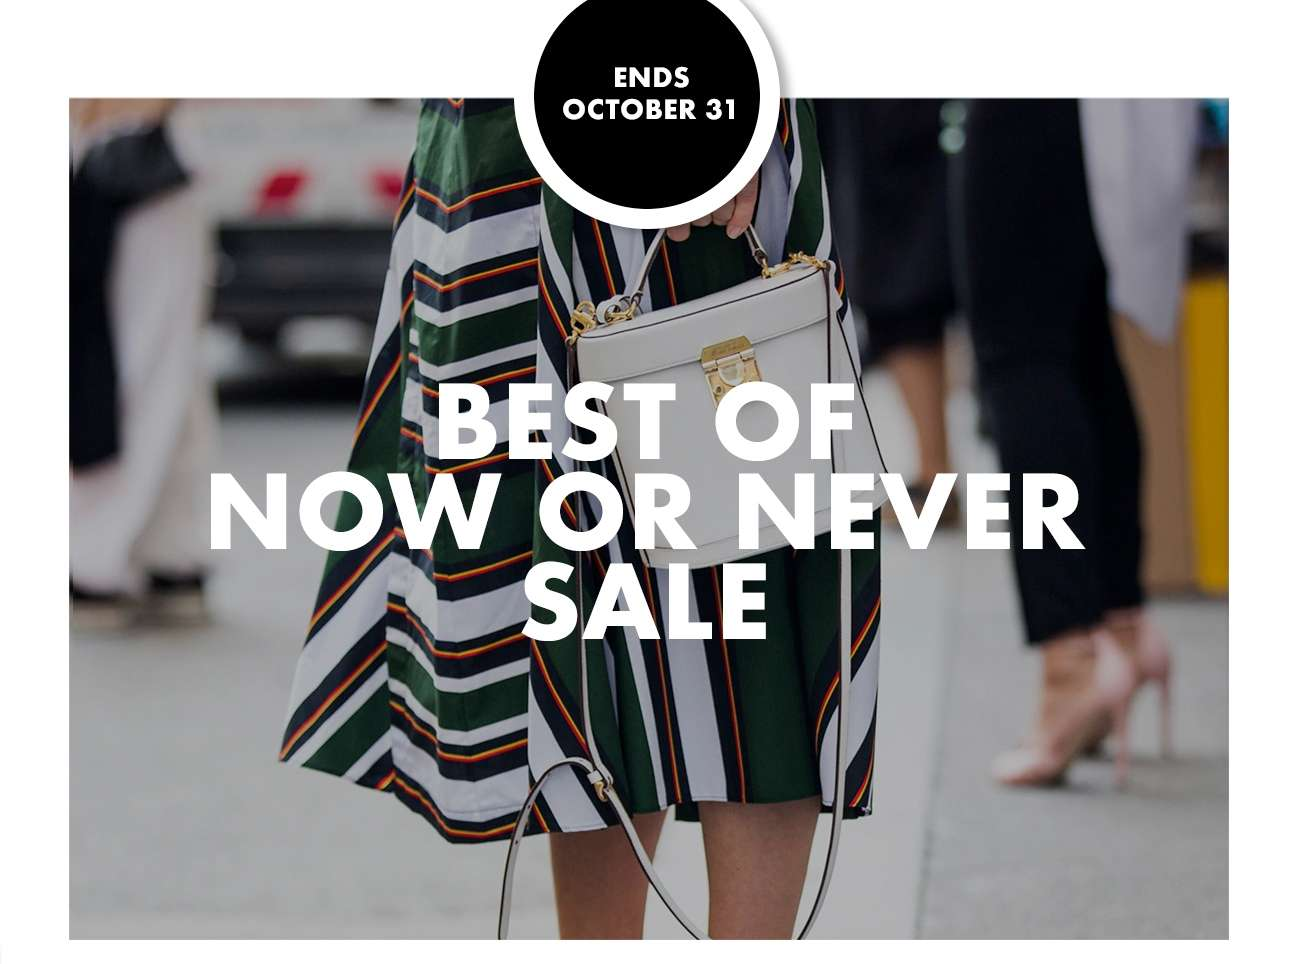 BEST OF NOW OR NEVER SALE